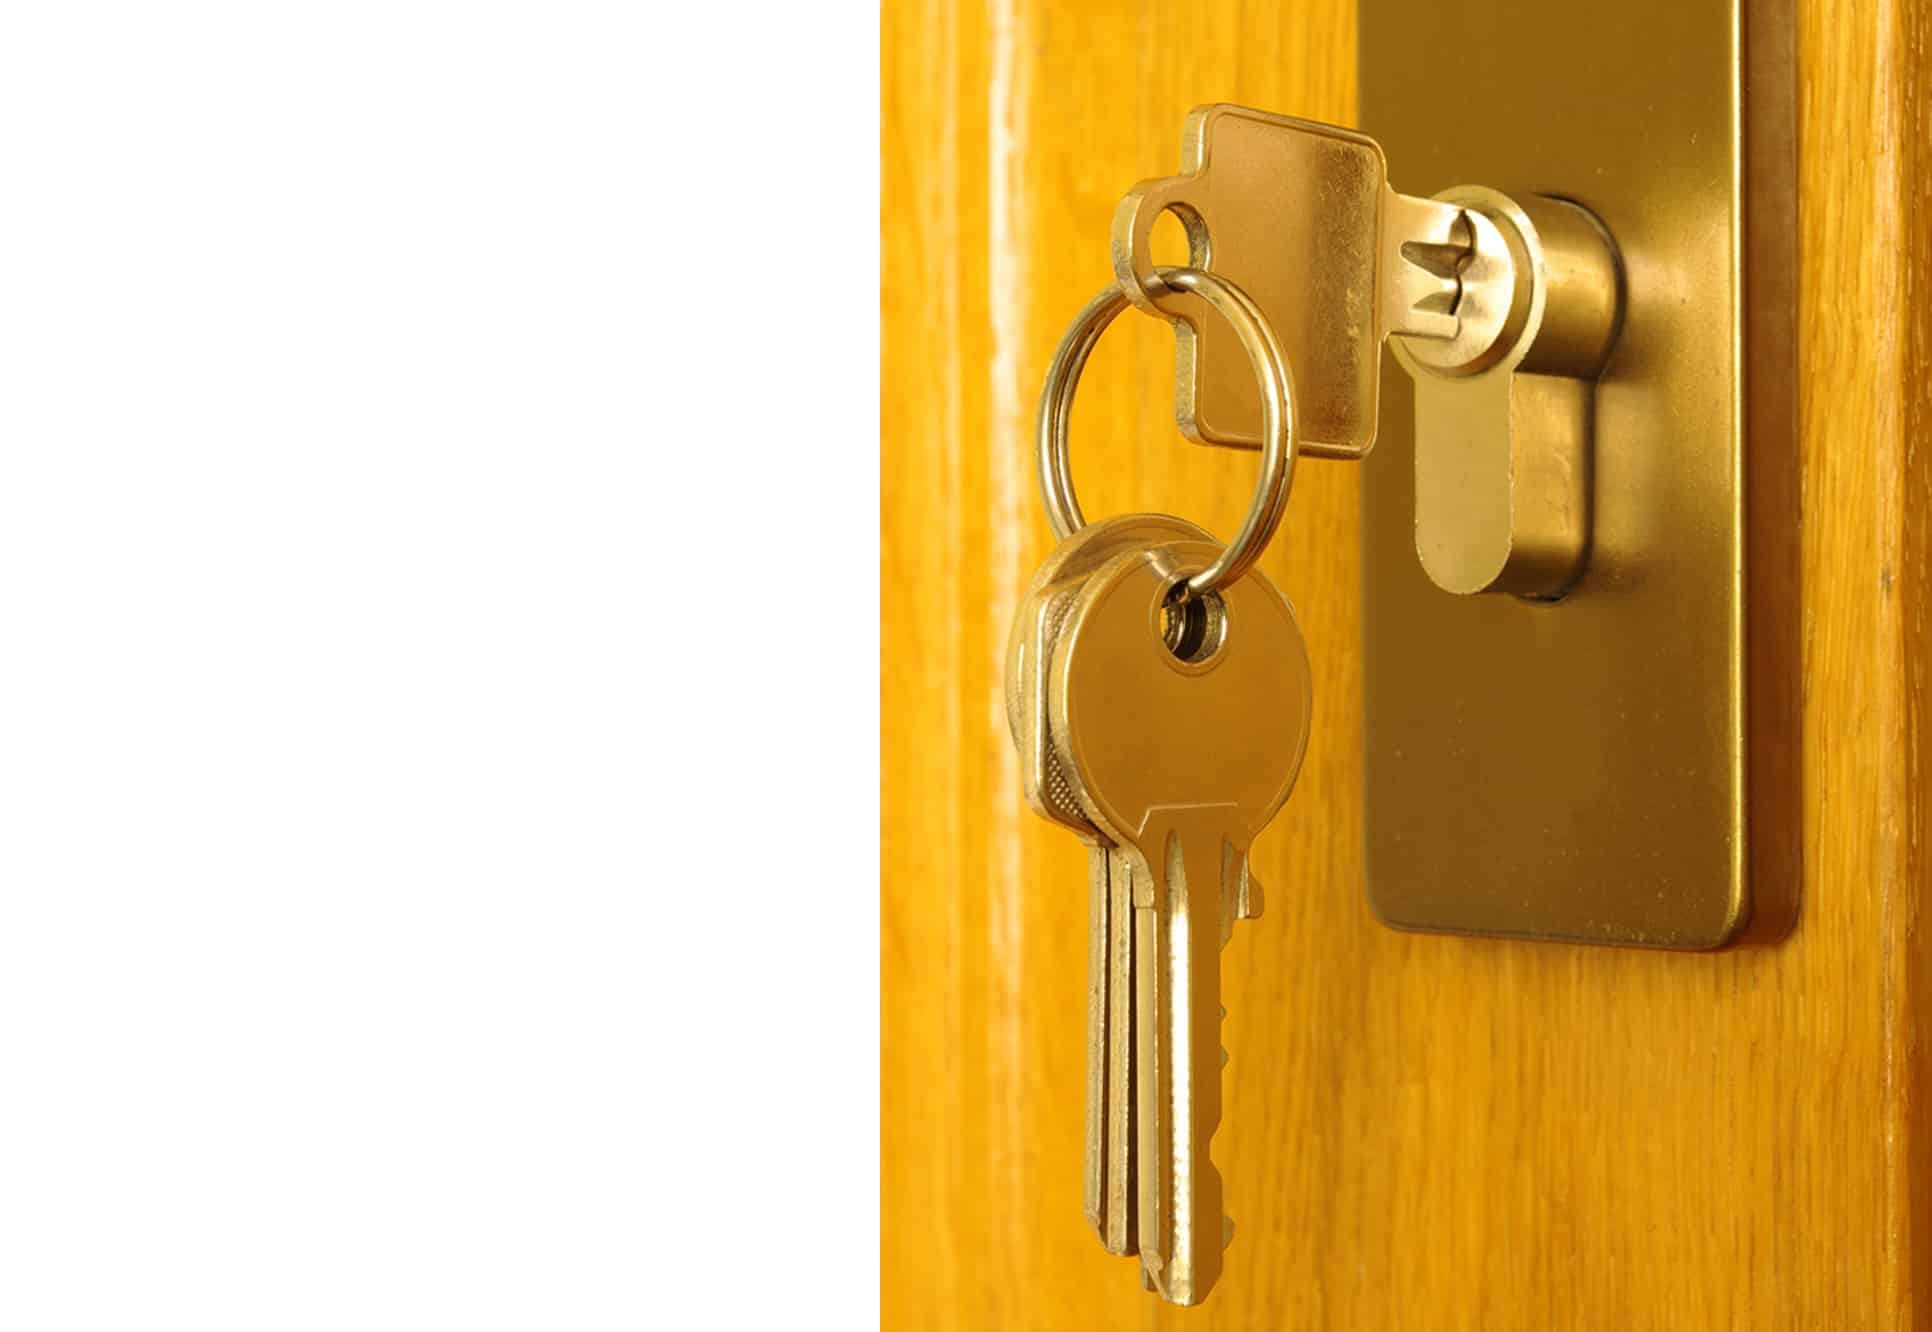 Local Locksmith Service in paradise, NV